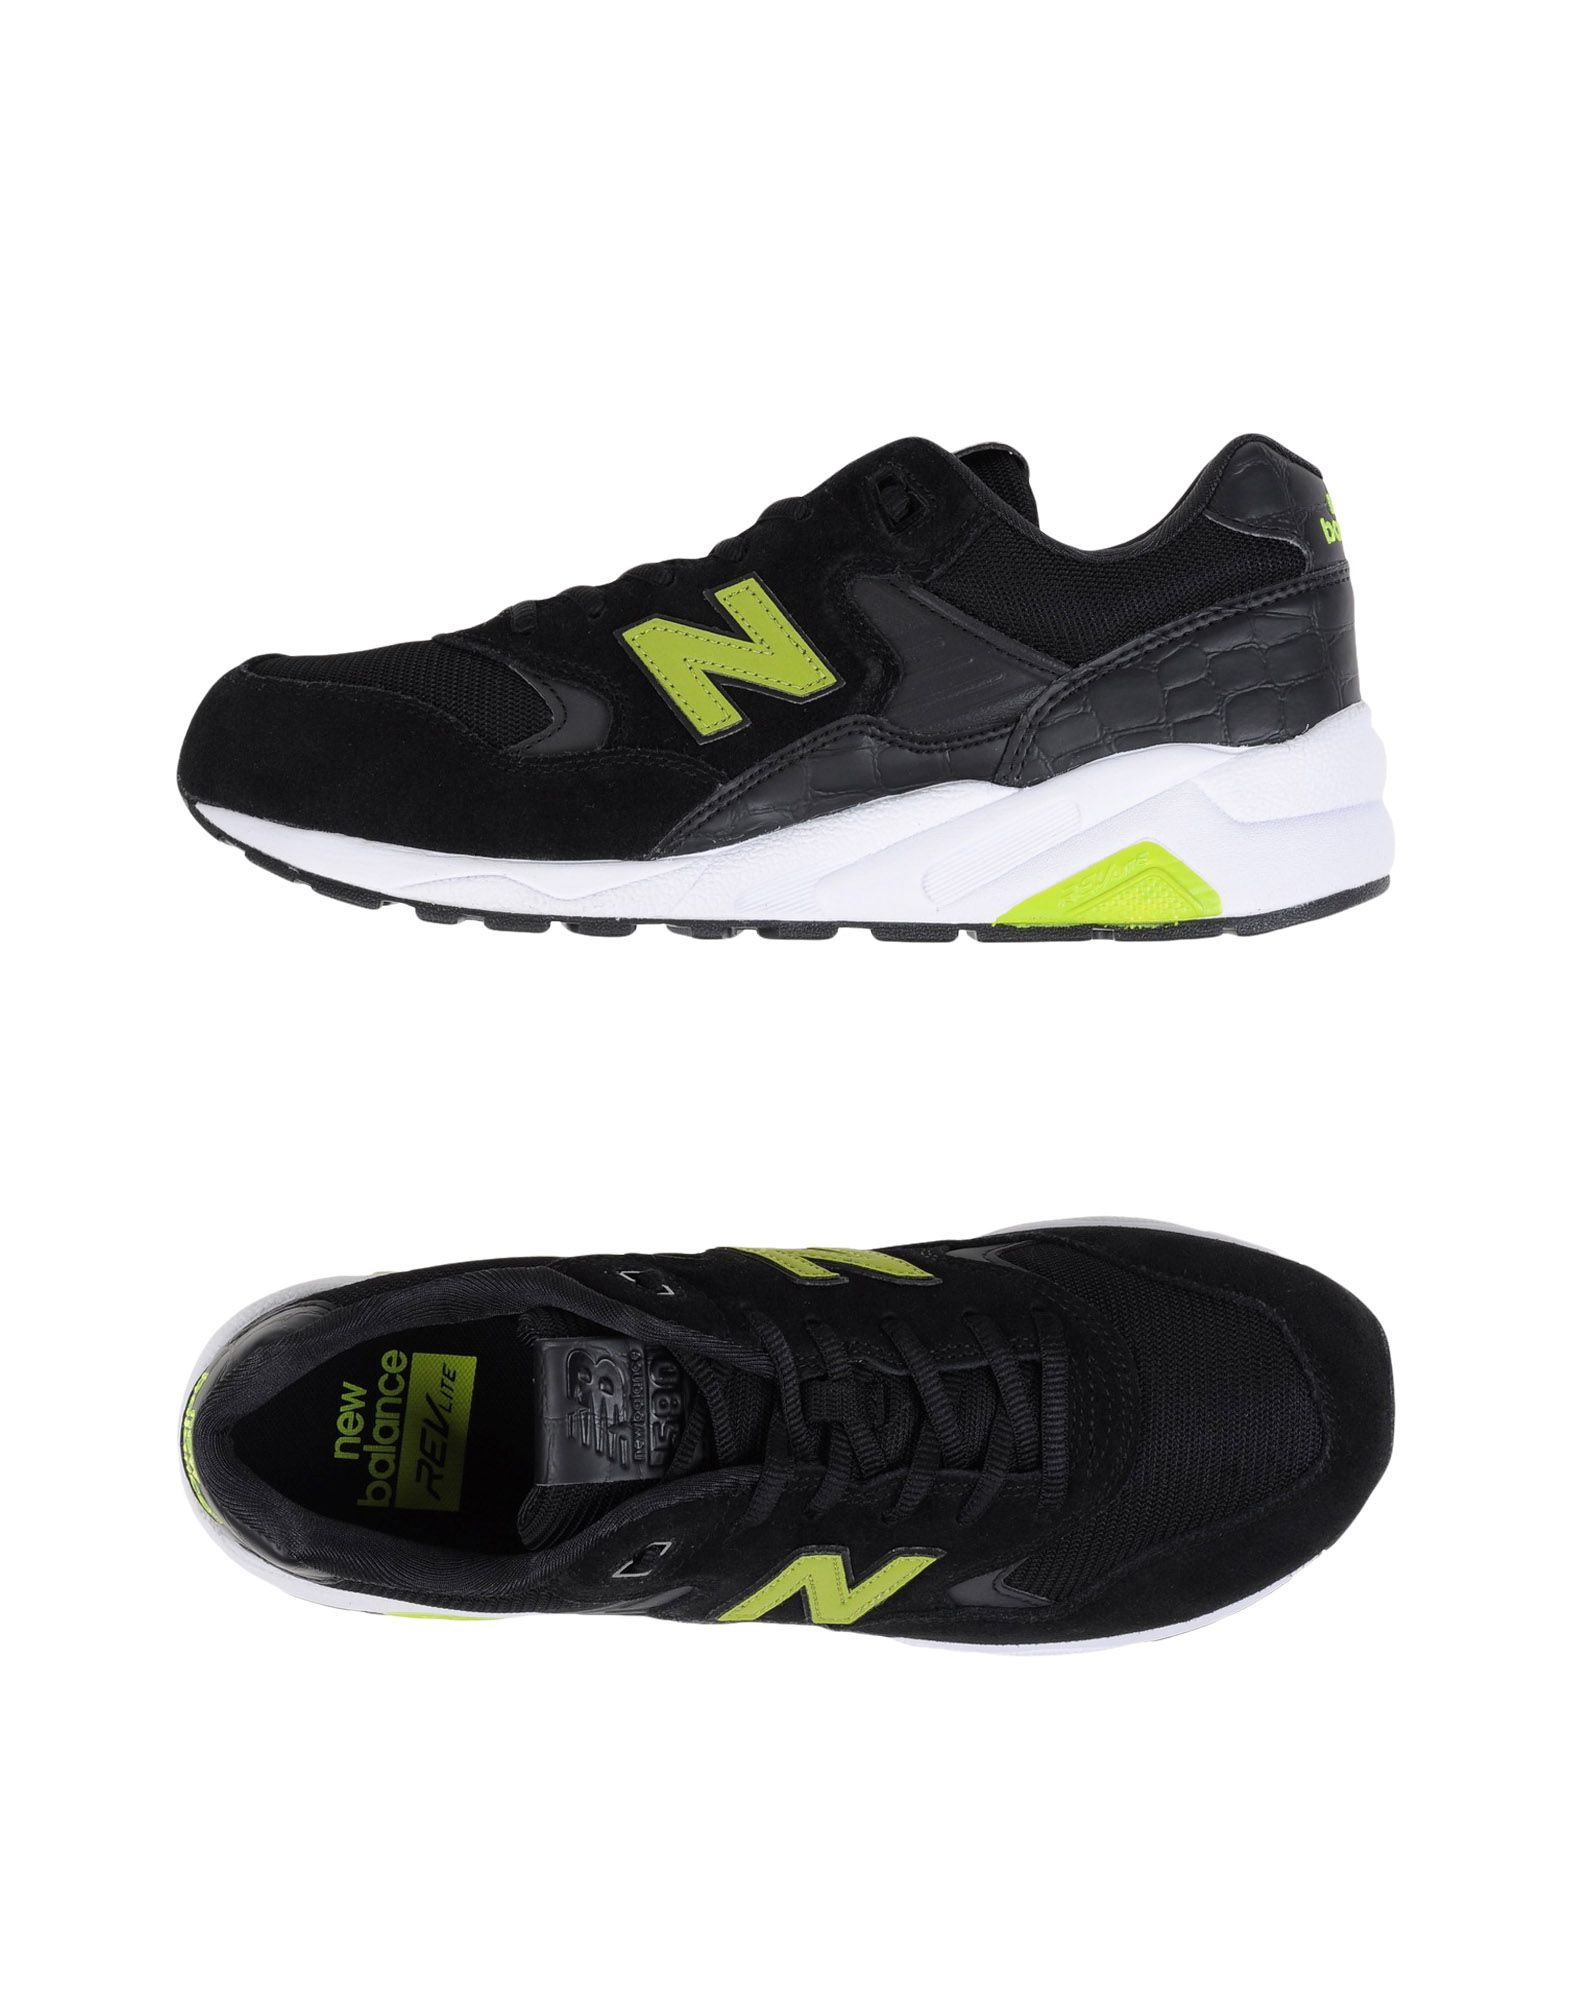 Sneakers New Balance 580 Wanderlust - Homme - Sneakers New Balance sur